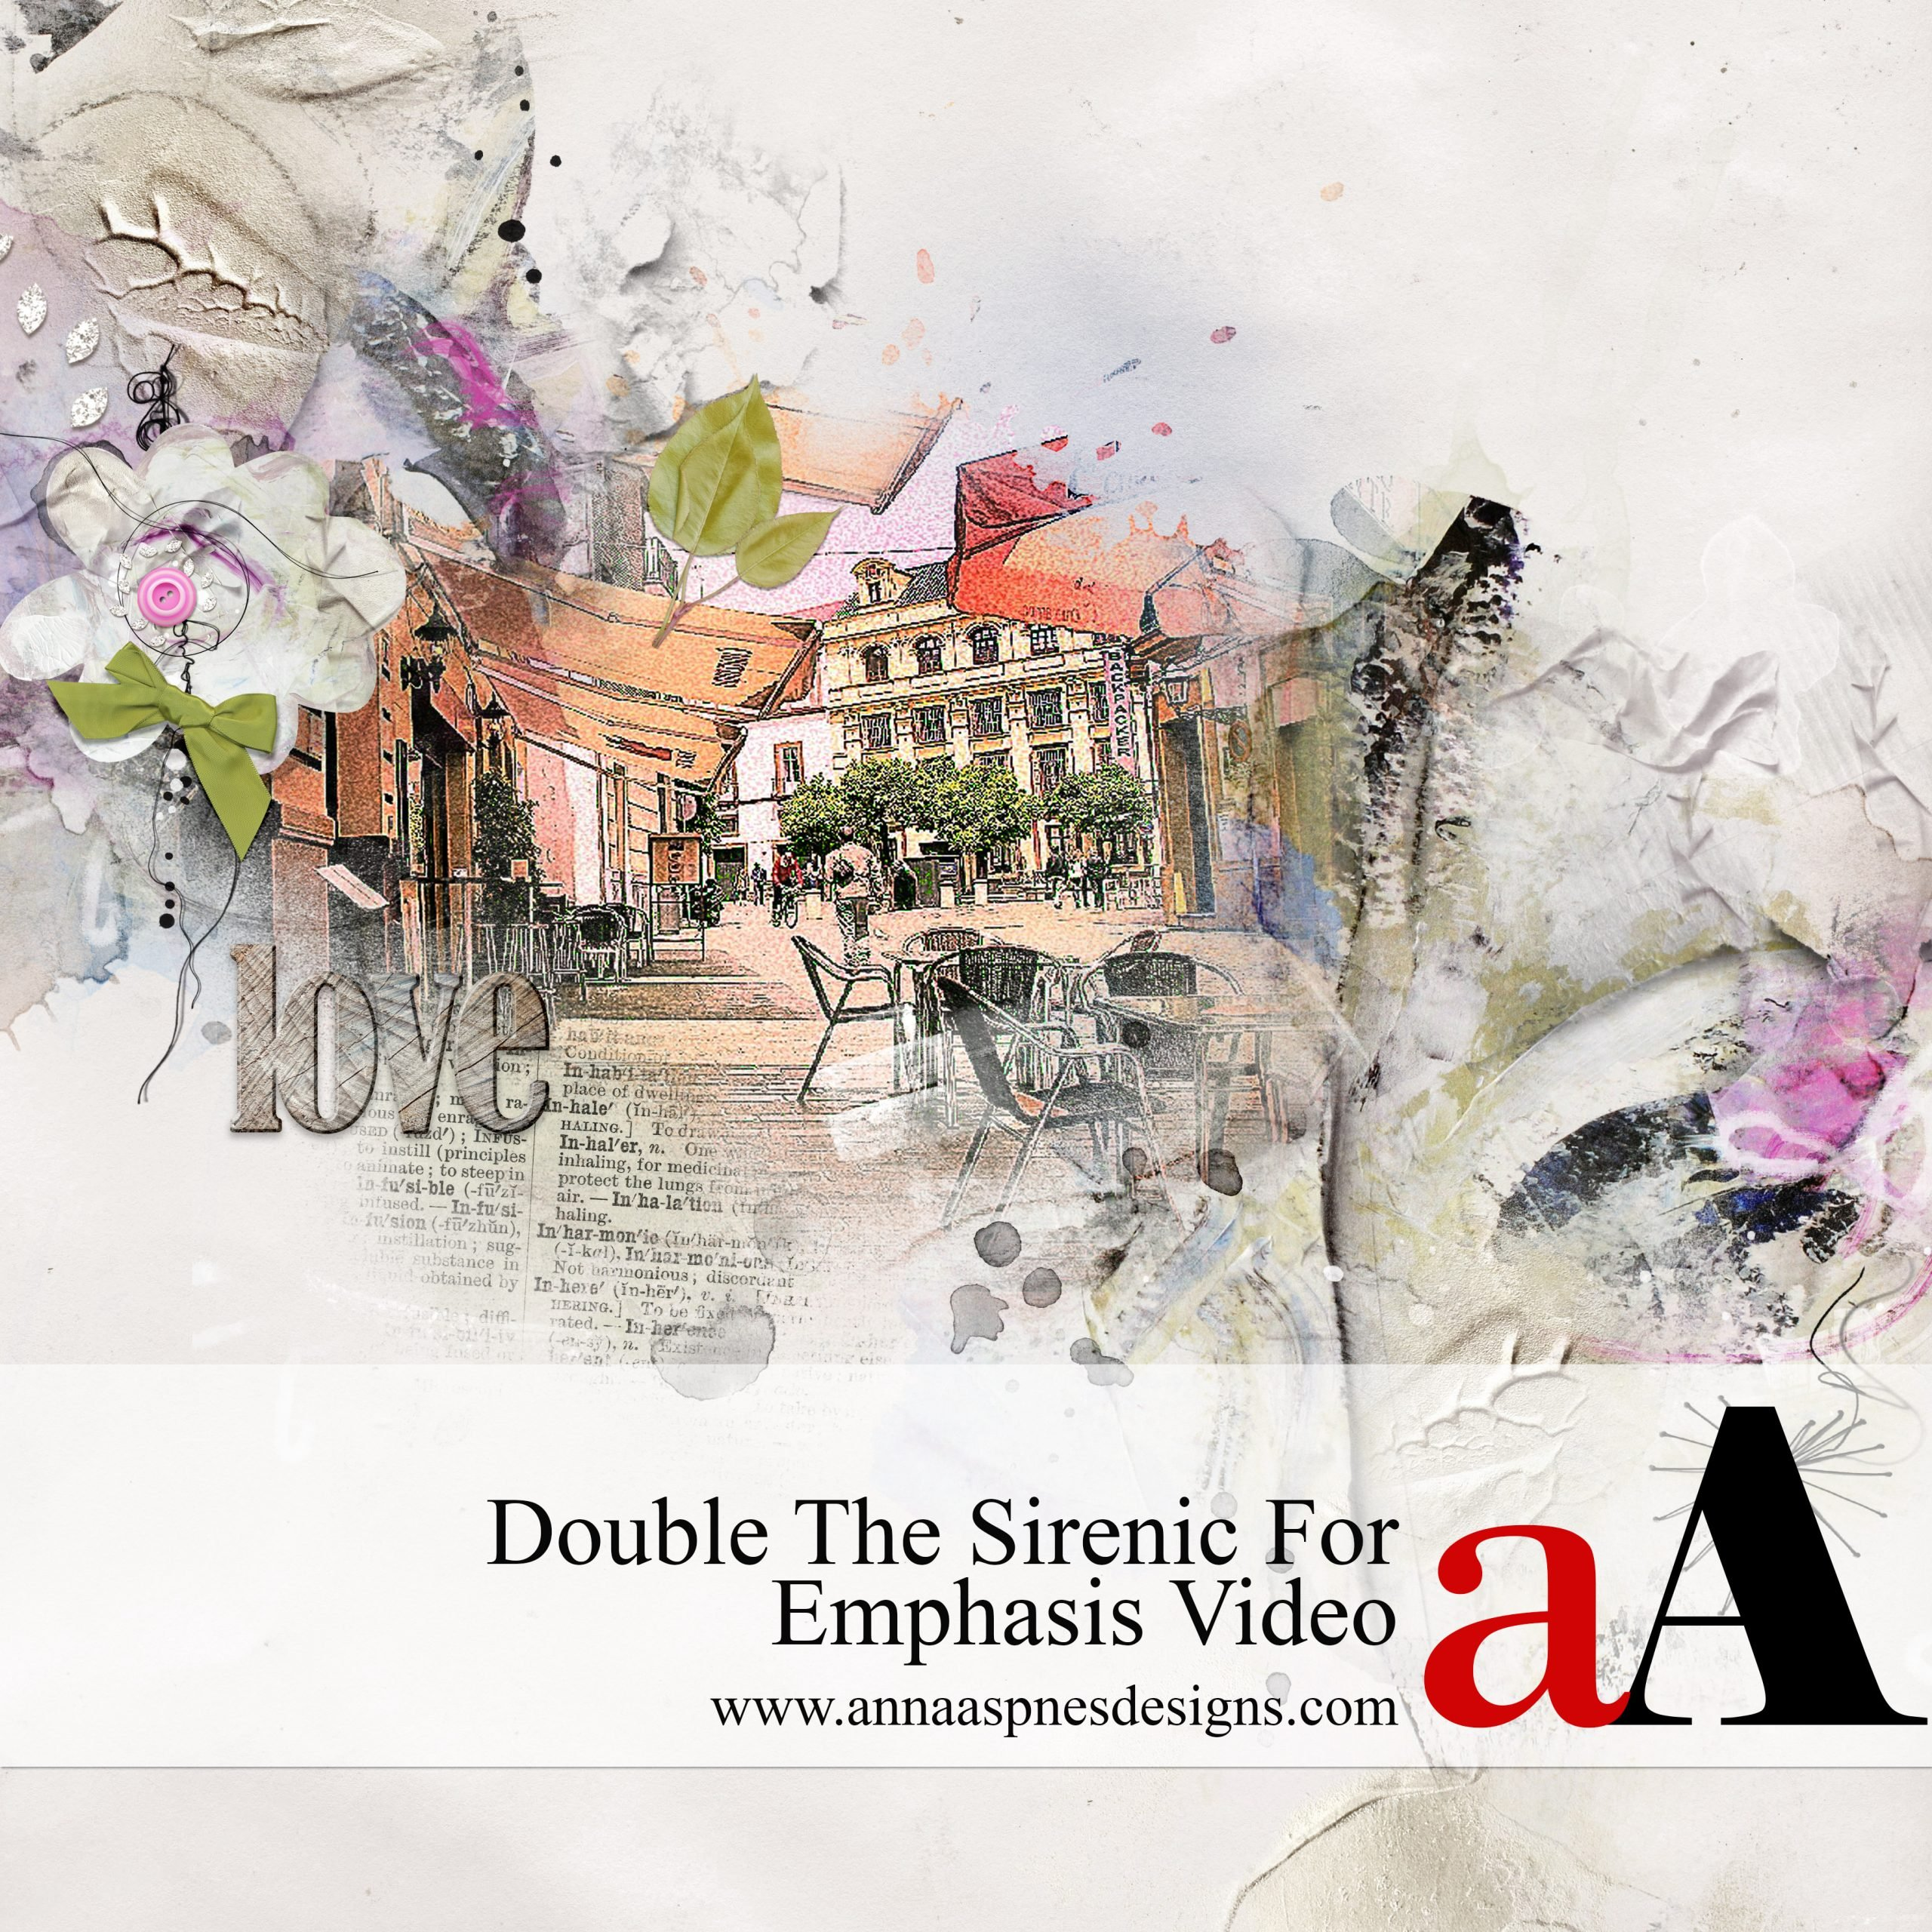 Double the Sirenic for Emphasis Video